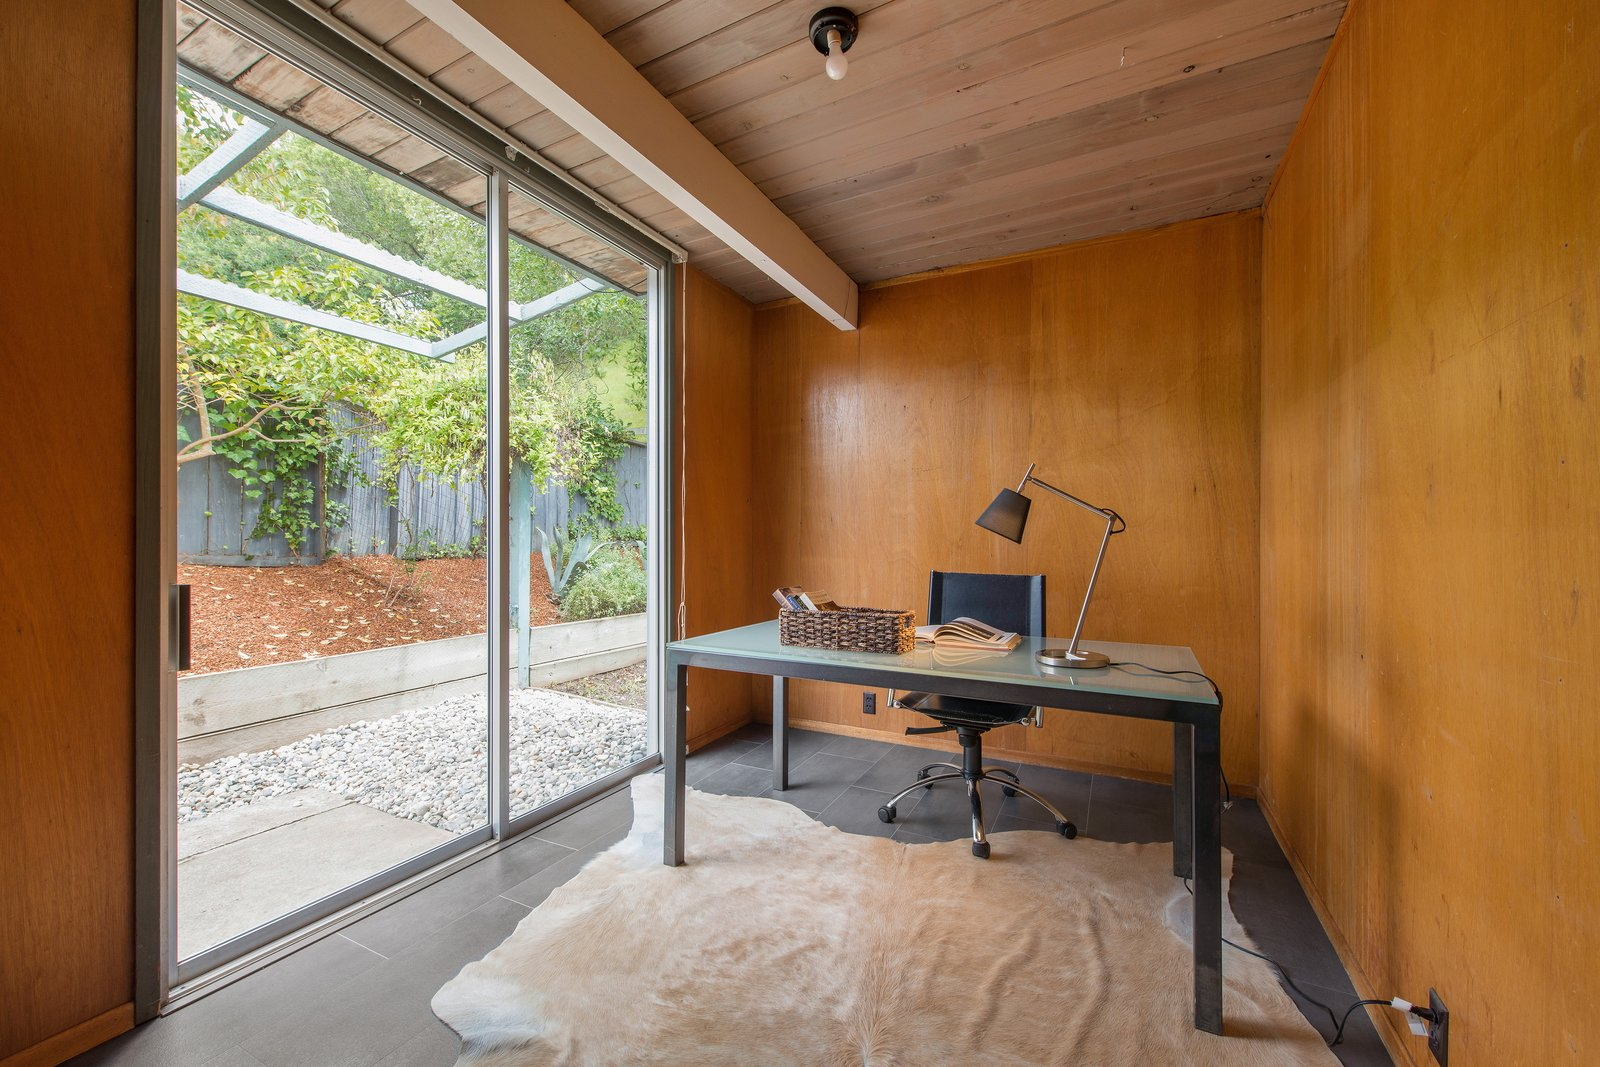 Office, Study Room Type, Desk, Laminate Floor, Chair, Rug Floor, and Lamps This is the bonus office space that is complete with original wood paneled walls and a sliding door to the patio.     Photo 11 of 14 in Live Large in This Extra-Spacious Eichler That's Asking $1.38M